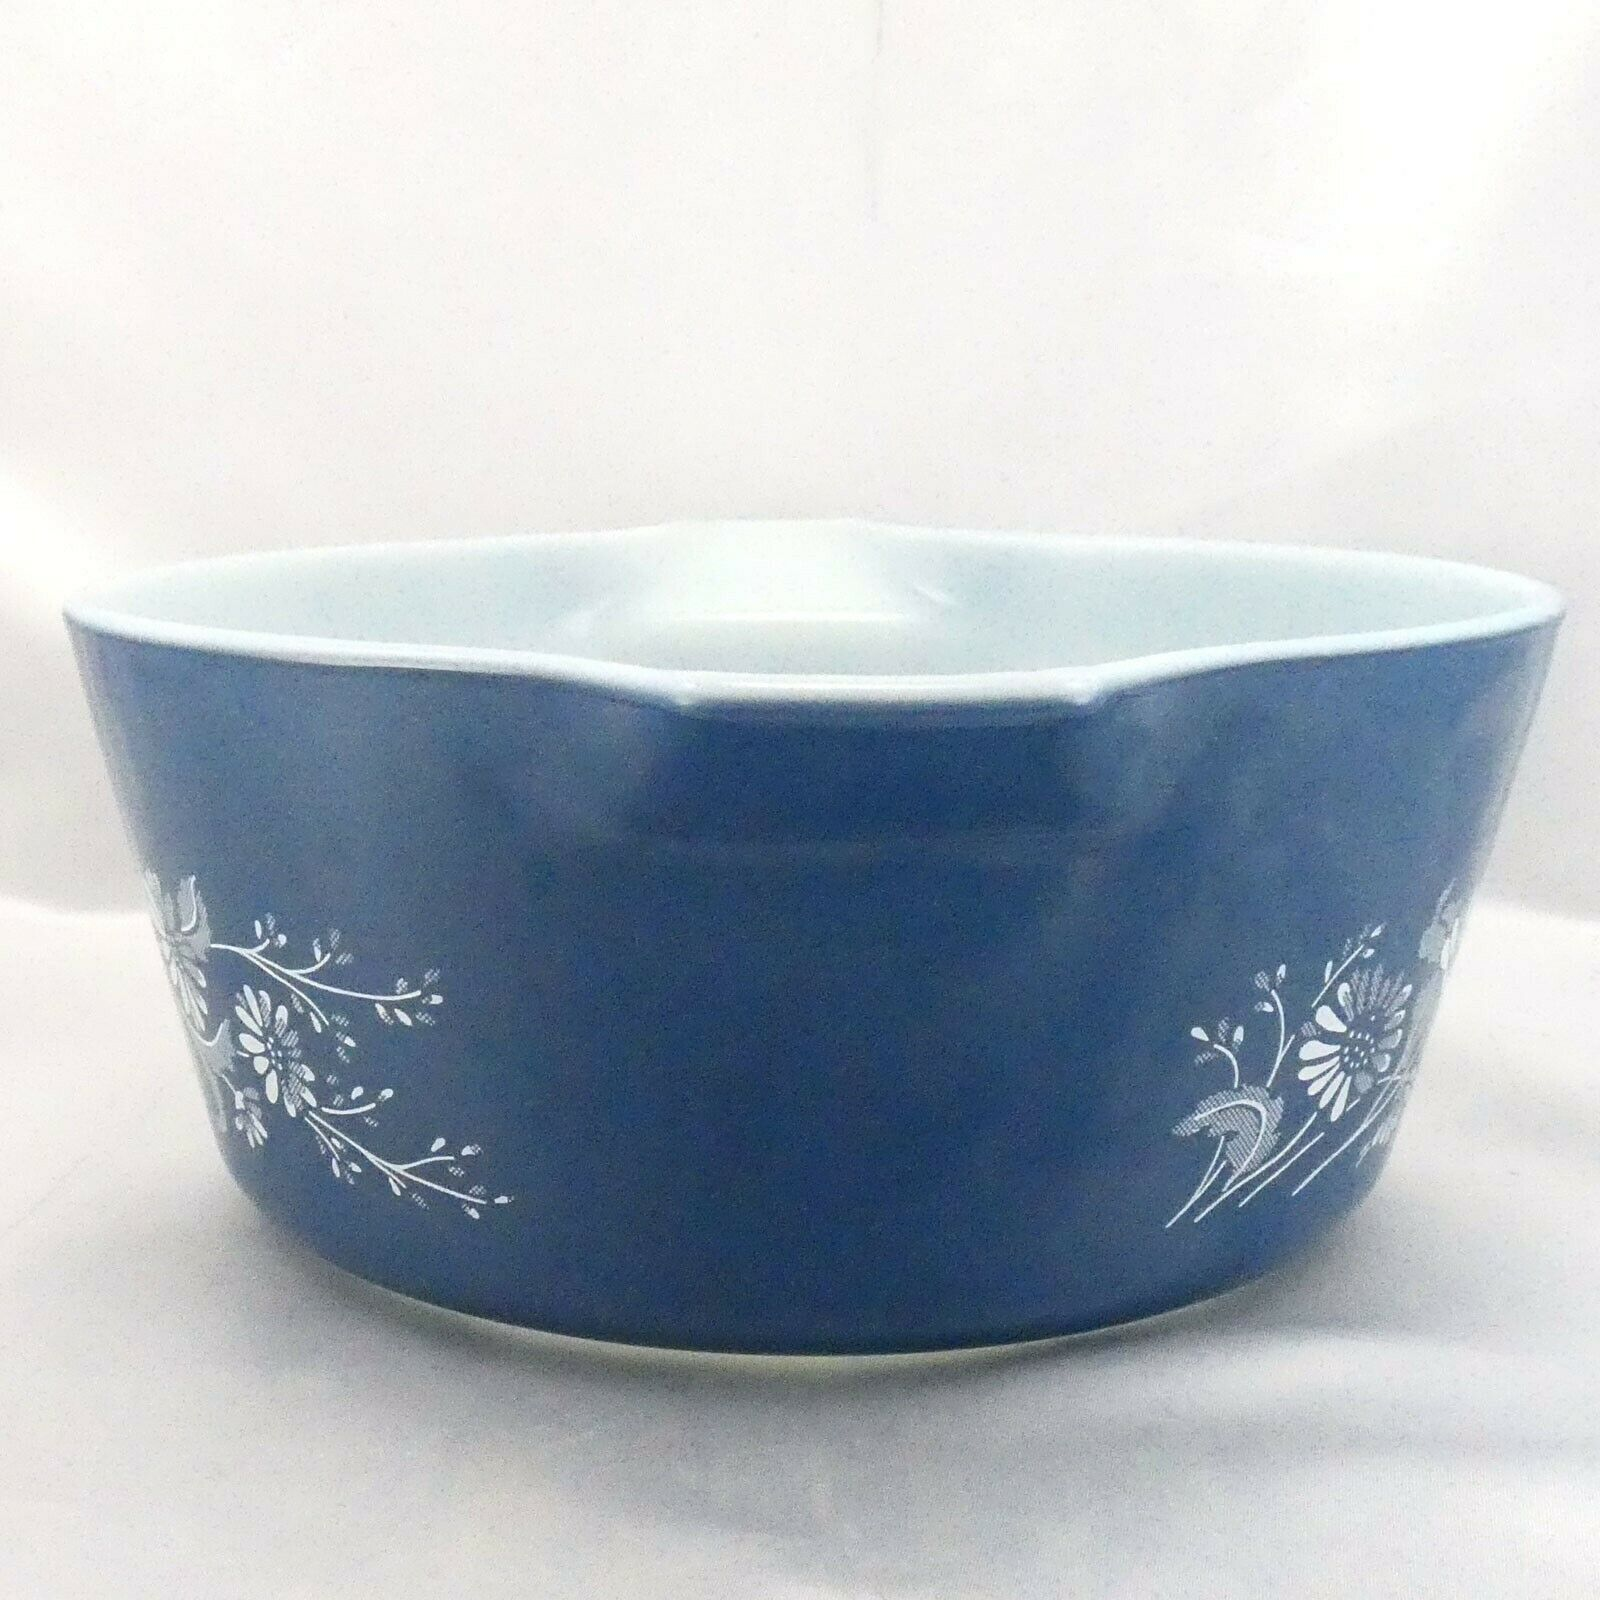 Pyrex 475 Colonial Mist Serving Bowl 2.5qt Blue Daisy Casserole Dish Made in USA image 2